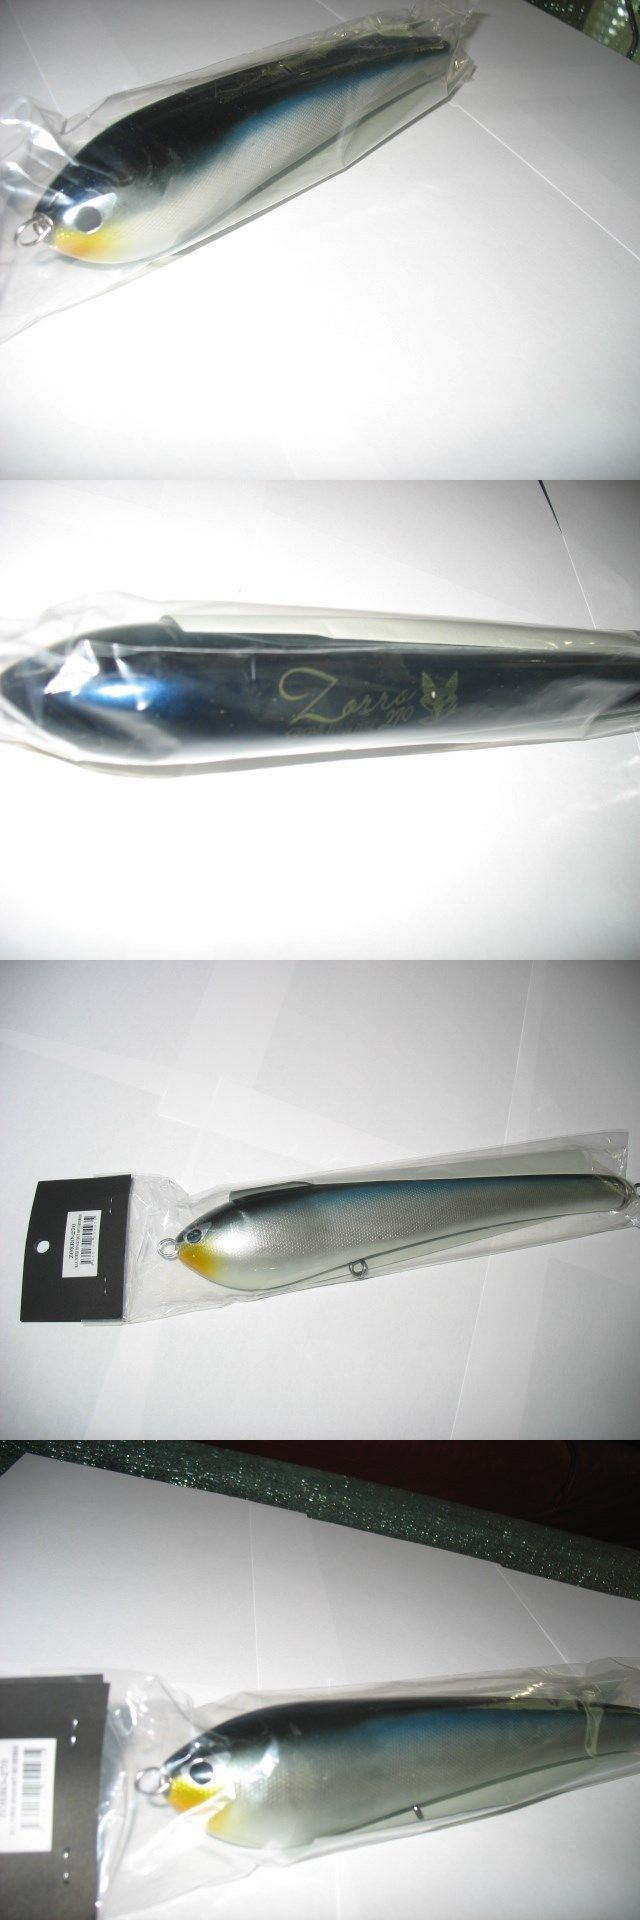 Saltwater Lures 36153: Cb One Tuna Lure 270Mm 140G Saury -> BUY IT NOW ONLY: $120 on eBay!